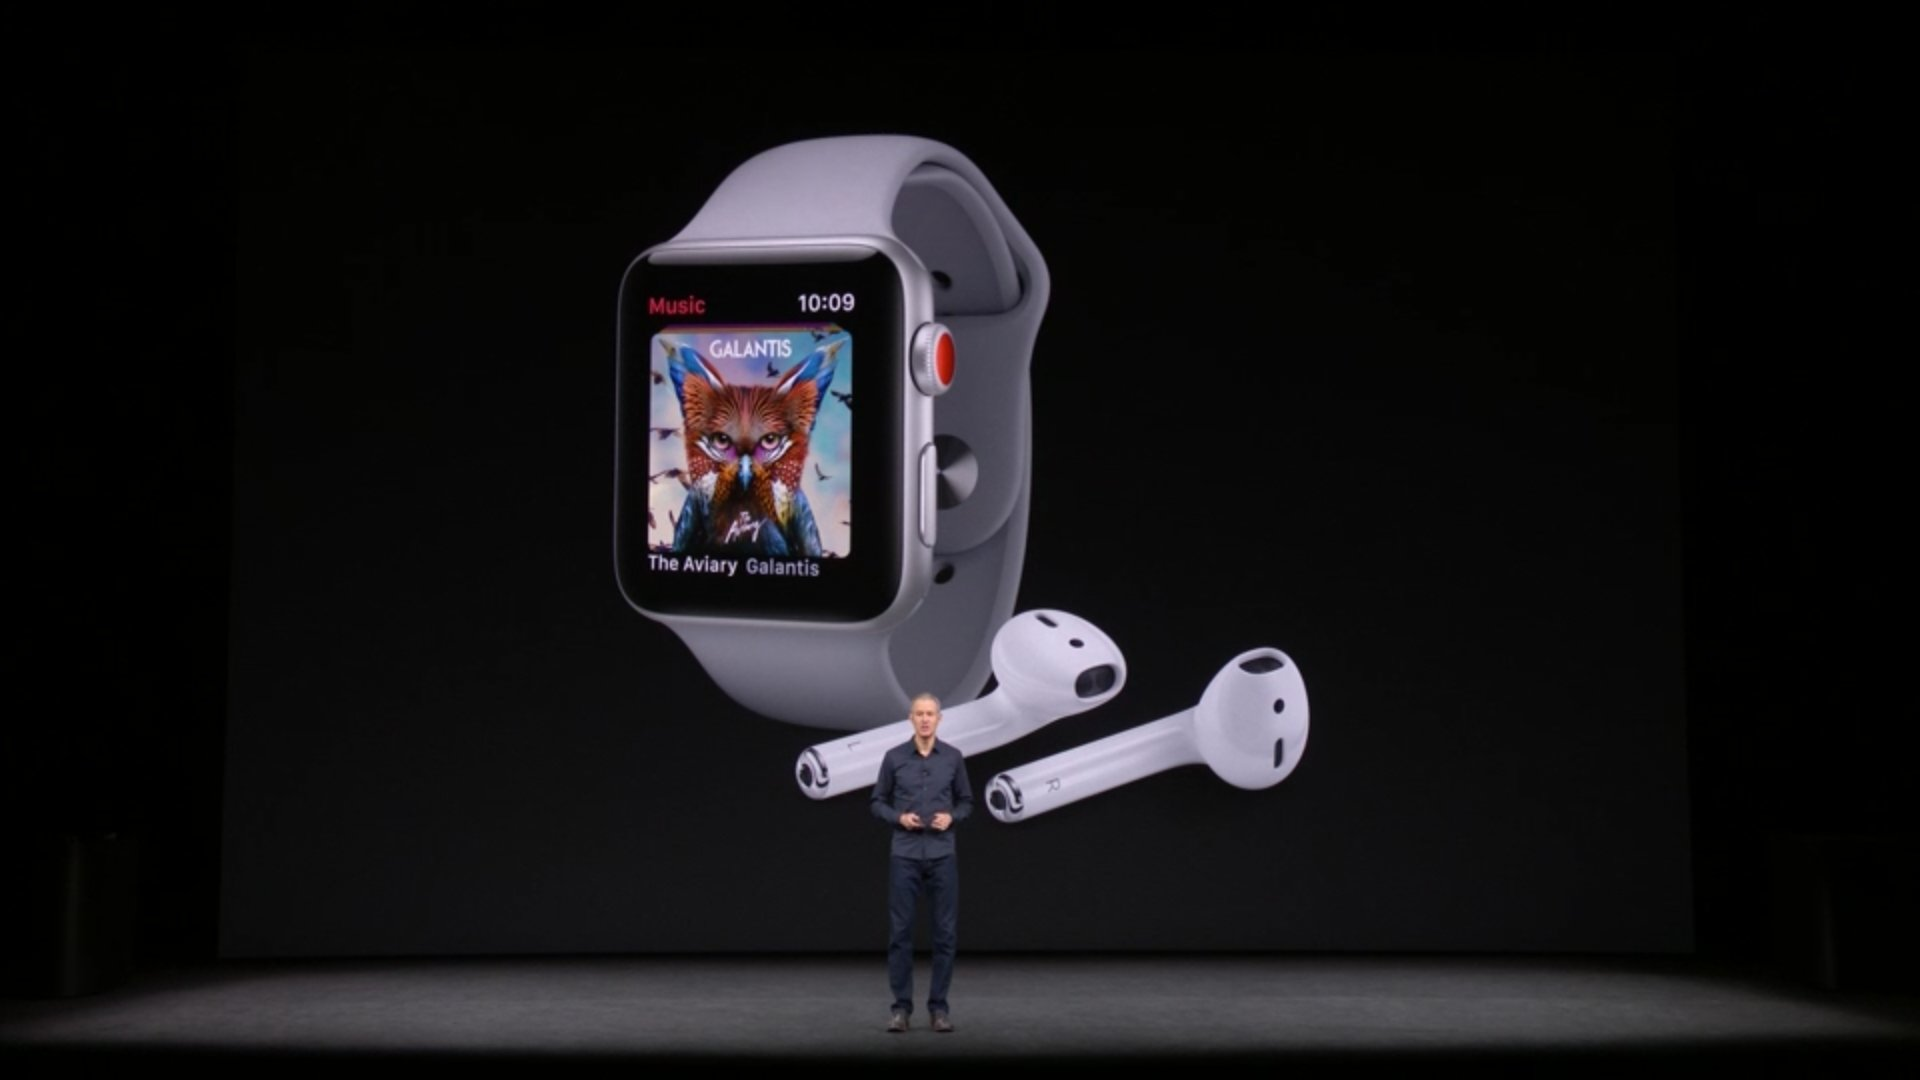 With Apple Watch Series 3 and built in cellular service, you can now use the watch to play music. #AppleEvent https://t.co/IQnKRdkhIQ